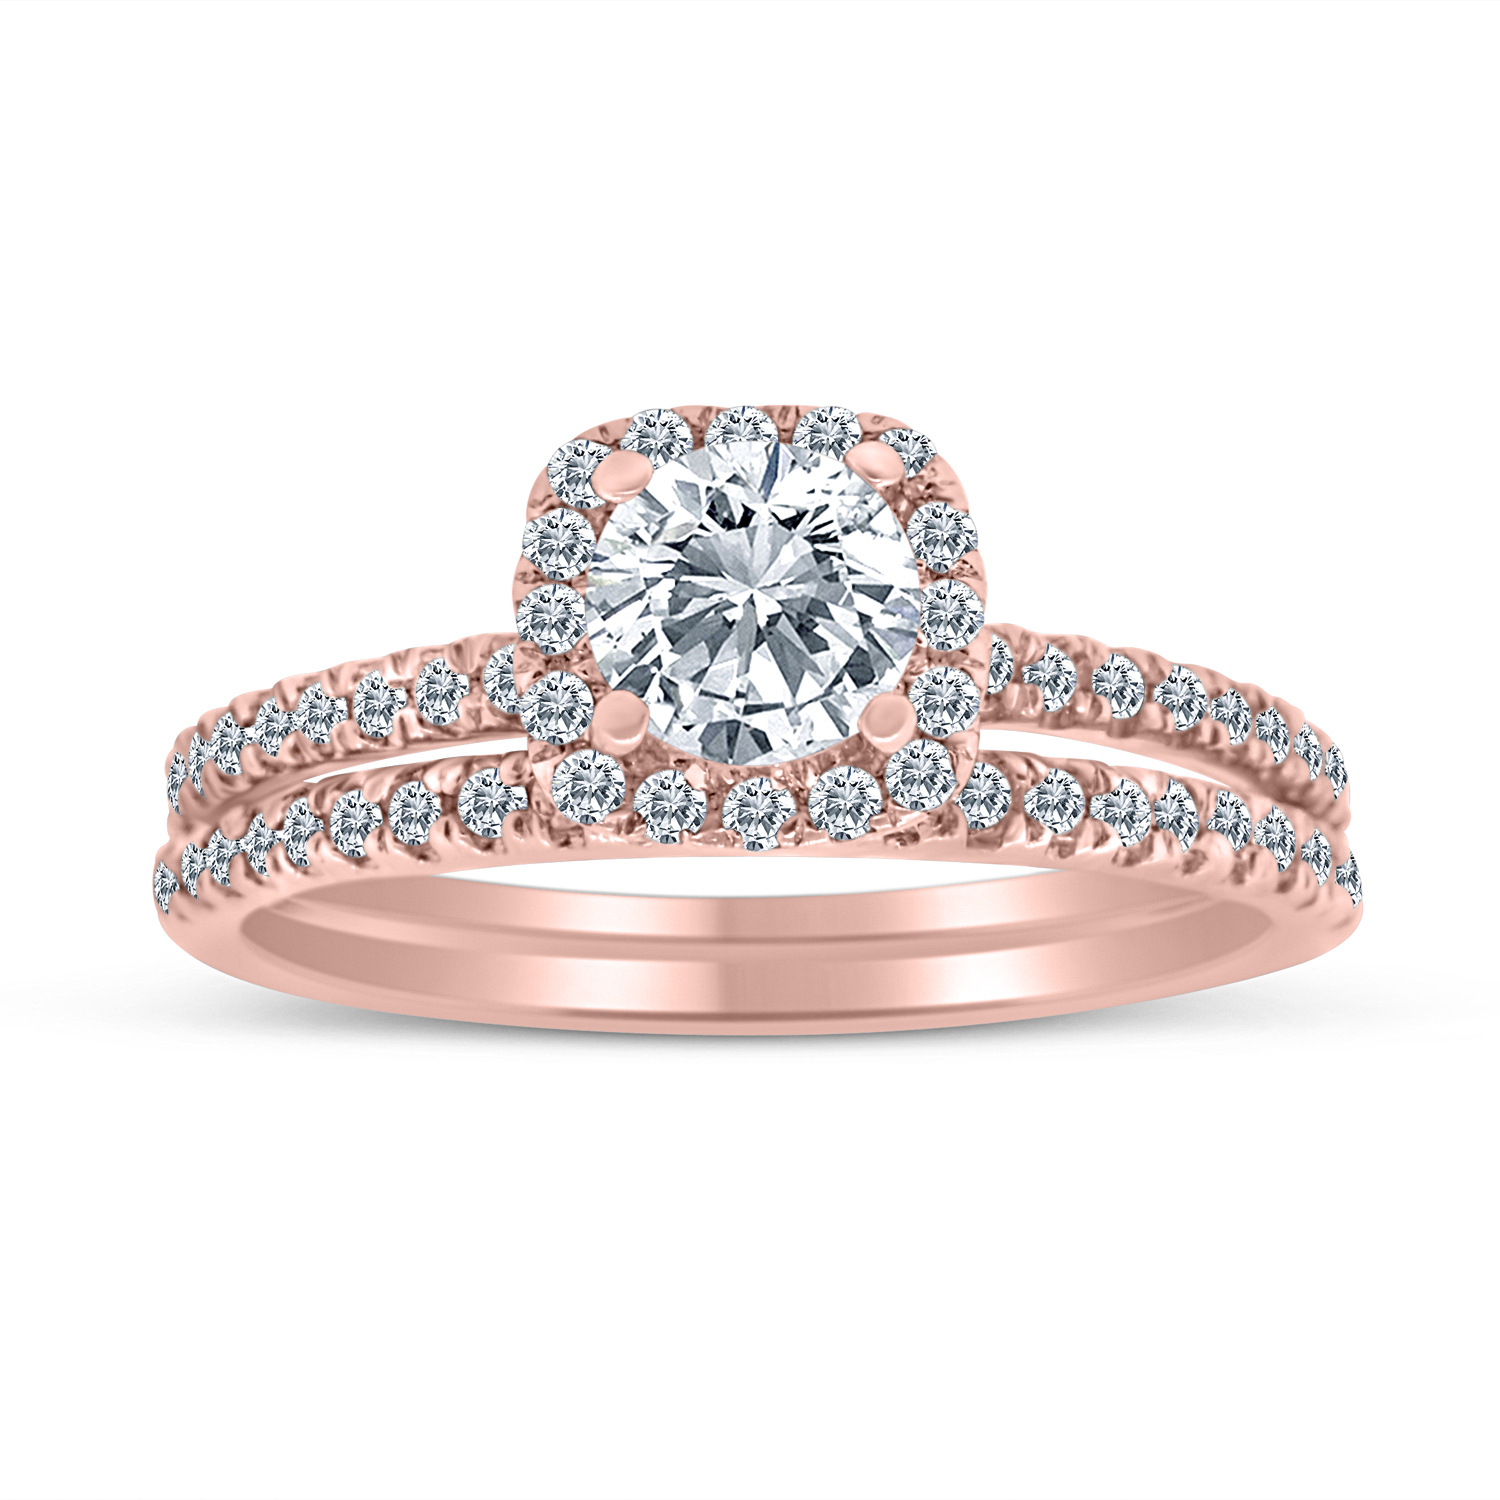 1.00ctw Diamond Halo Bridal Set Engagement Ring in 10k Rose Gold by Sk Jewel,Inc